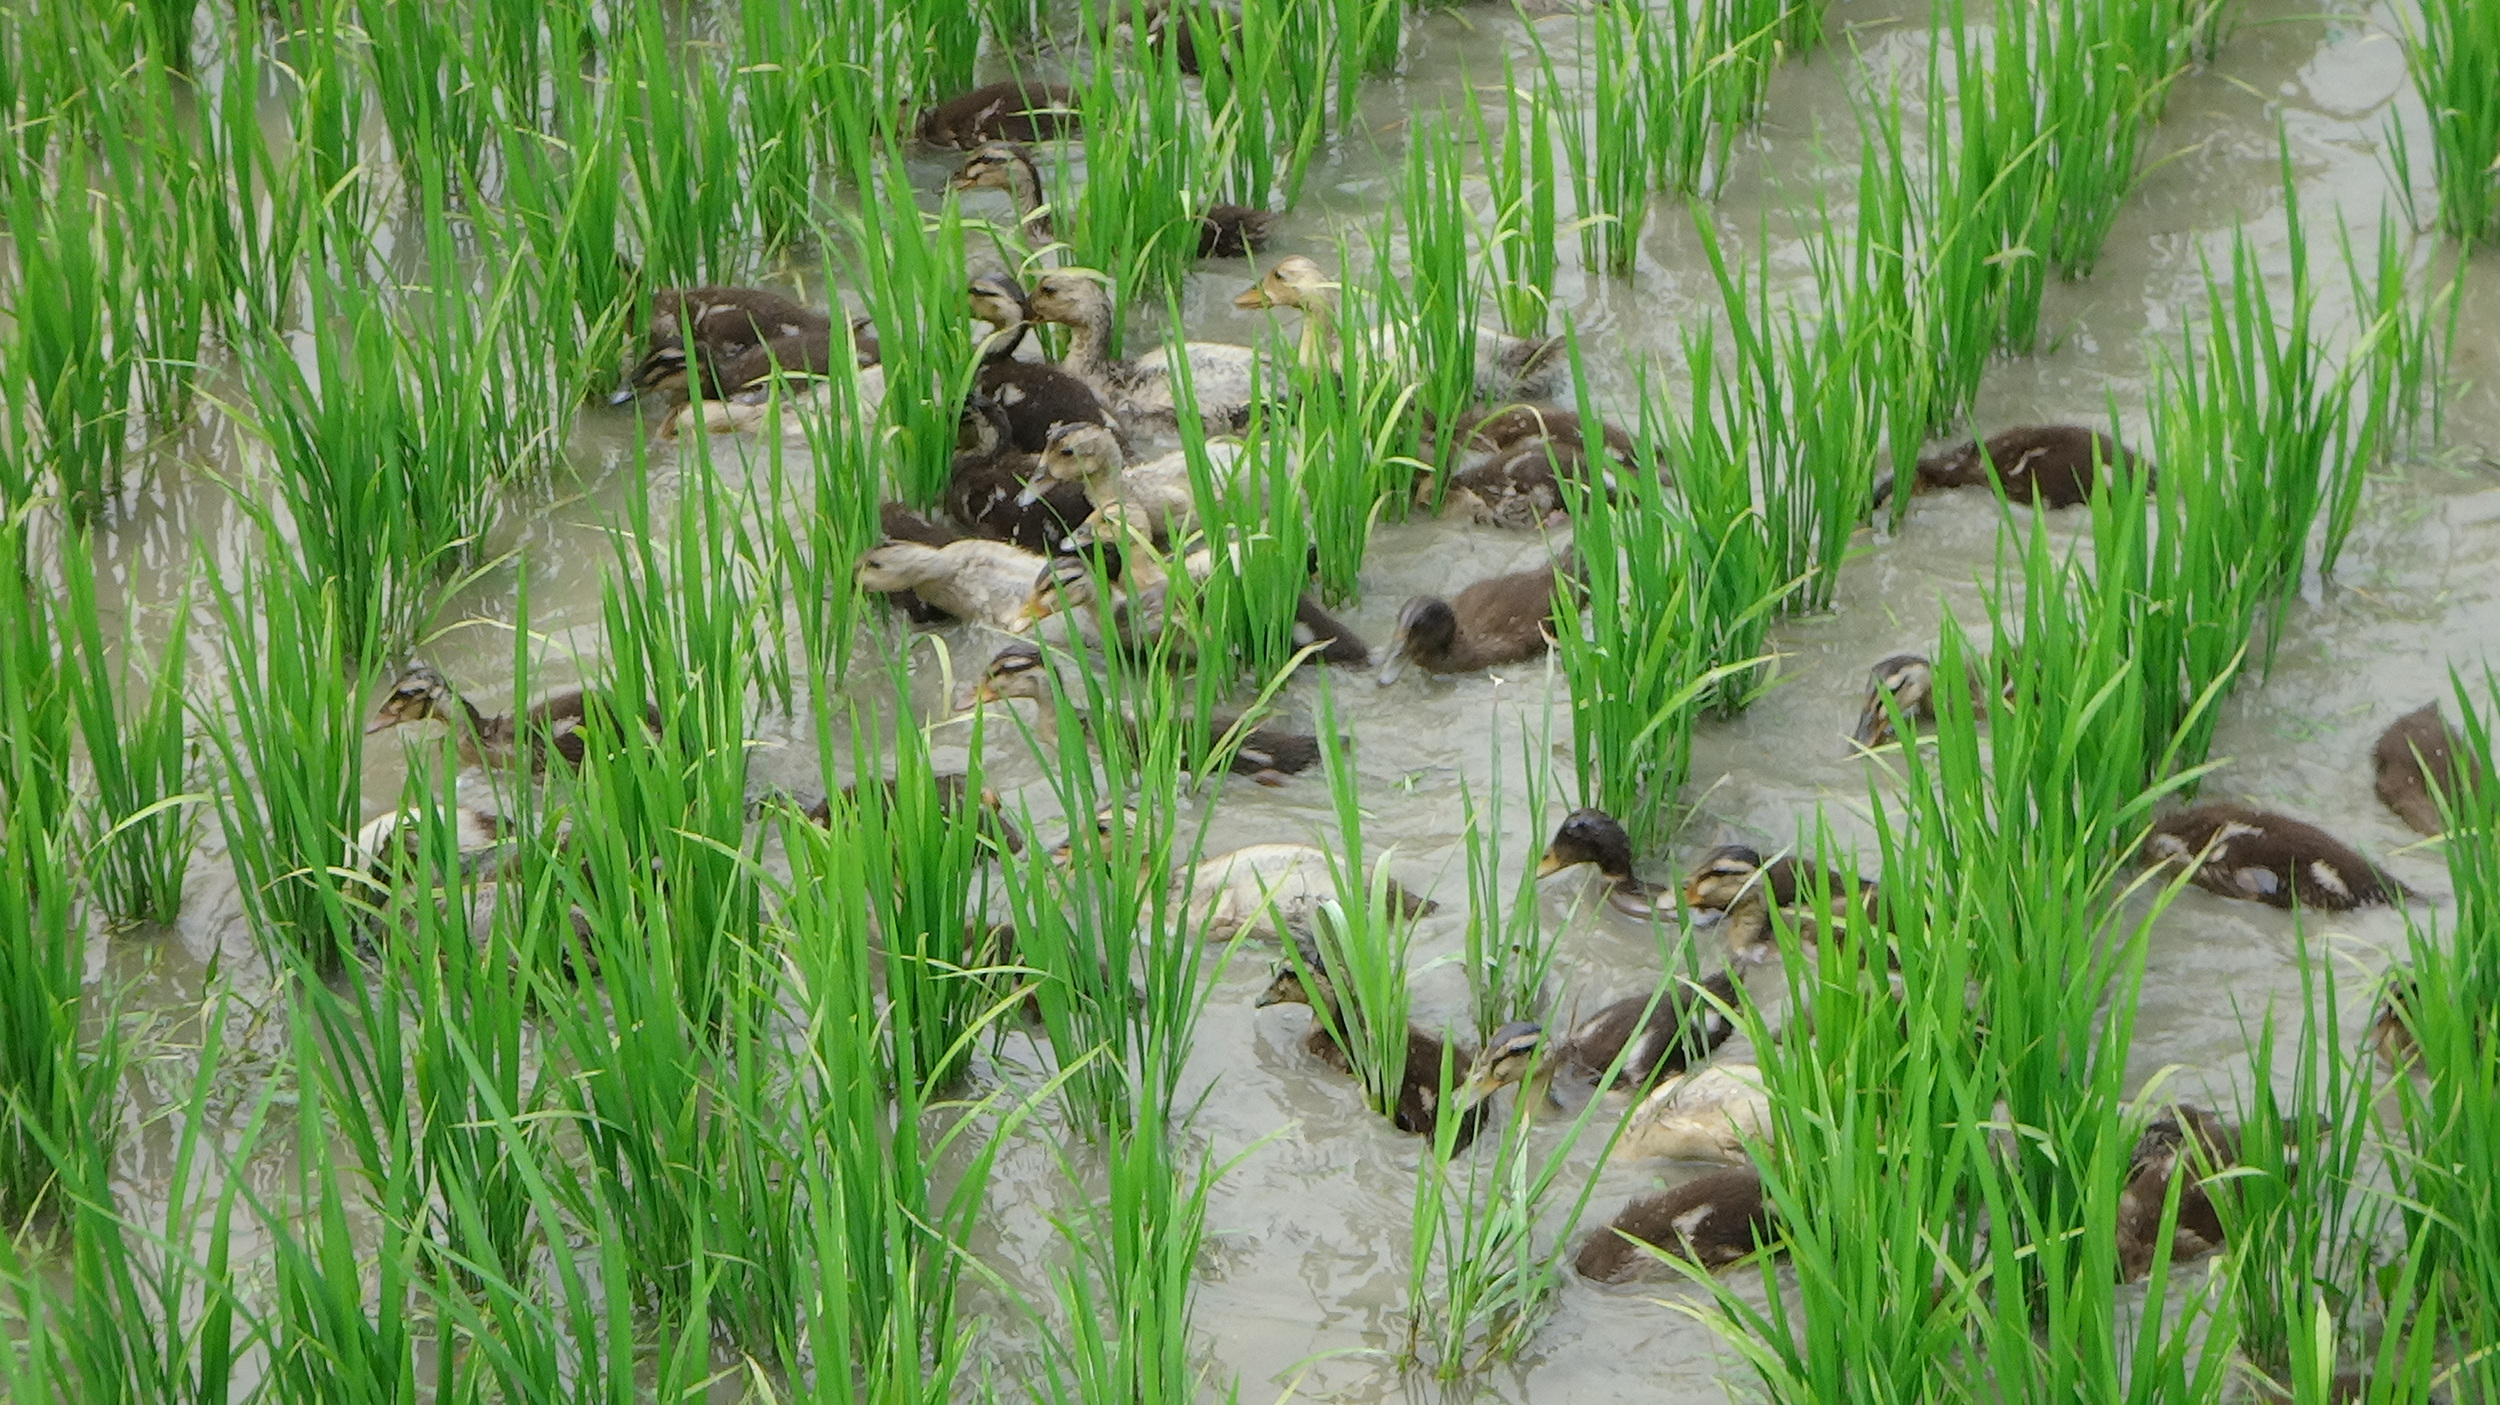 ducklings hard at work helping grow beautiful rice!